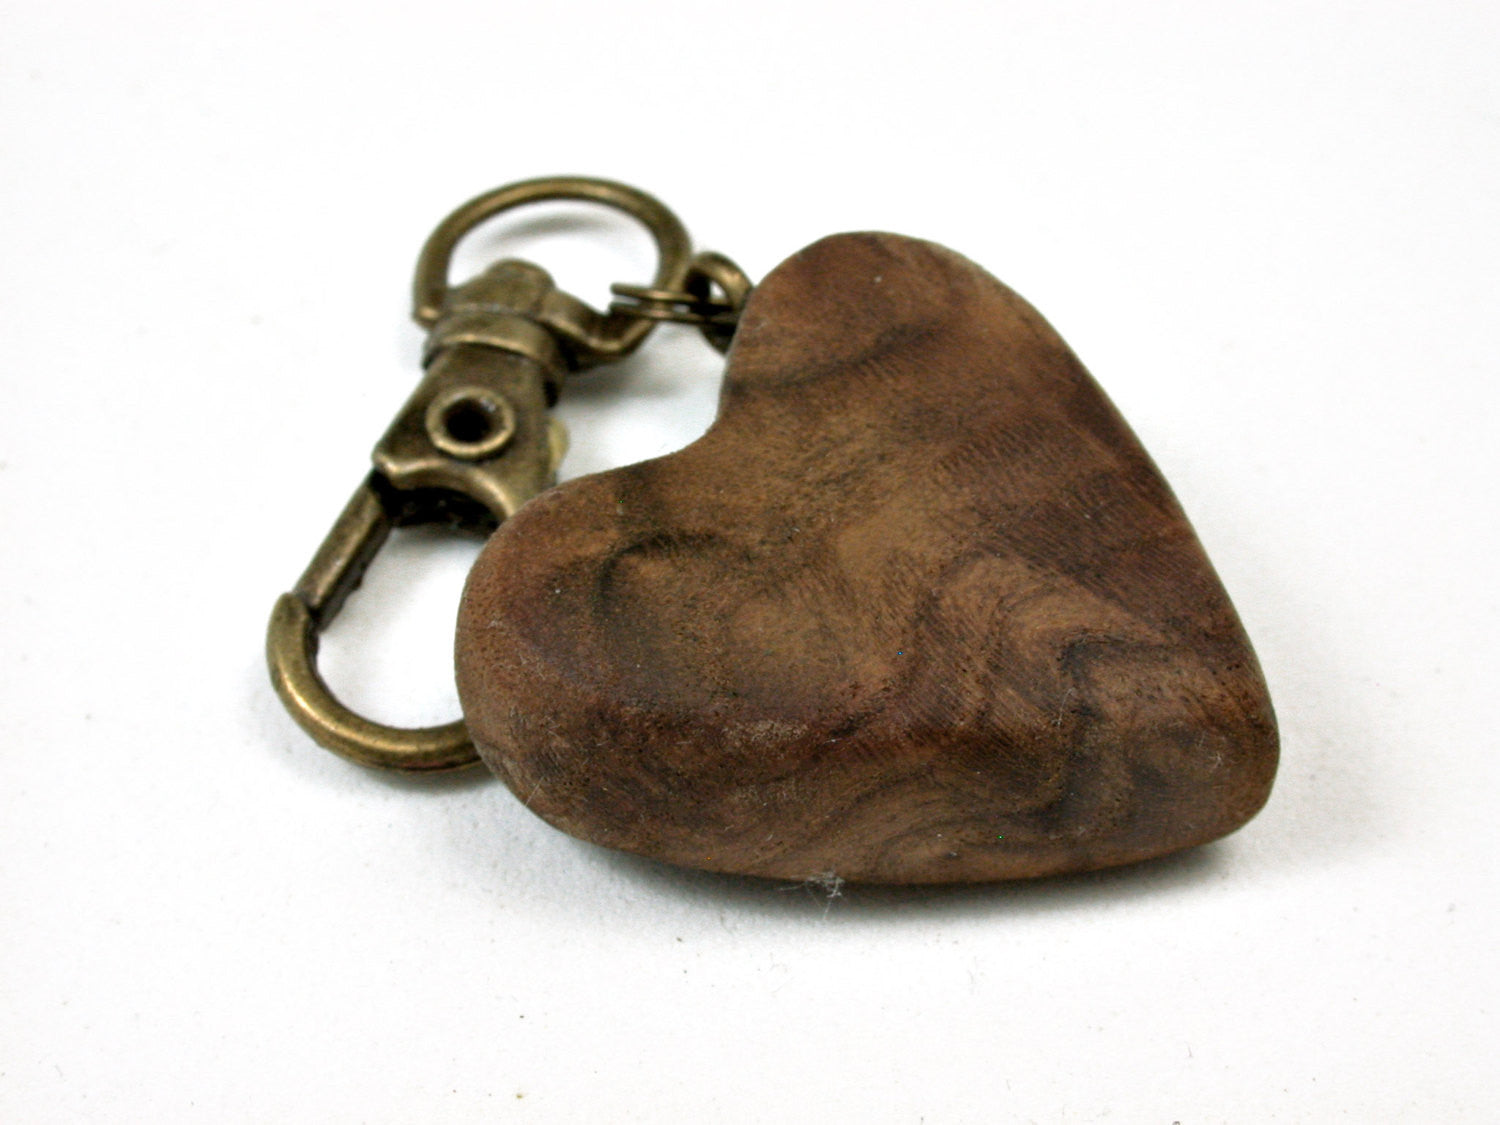 LV-2458 Russian Olive Burl Wooden Heart Charm, Keychain, Wedding Favor-Hand Made